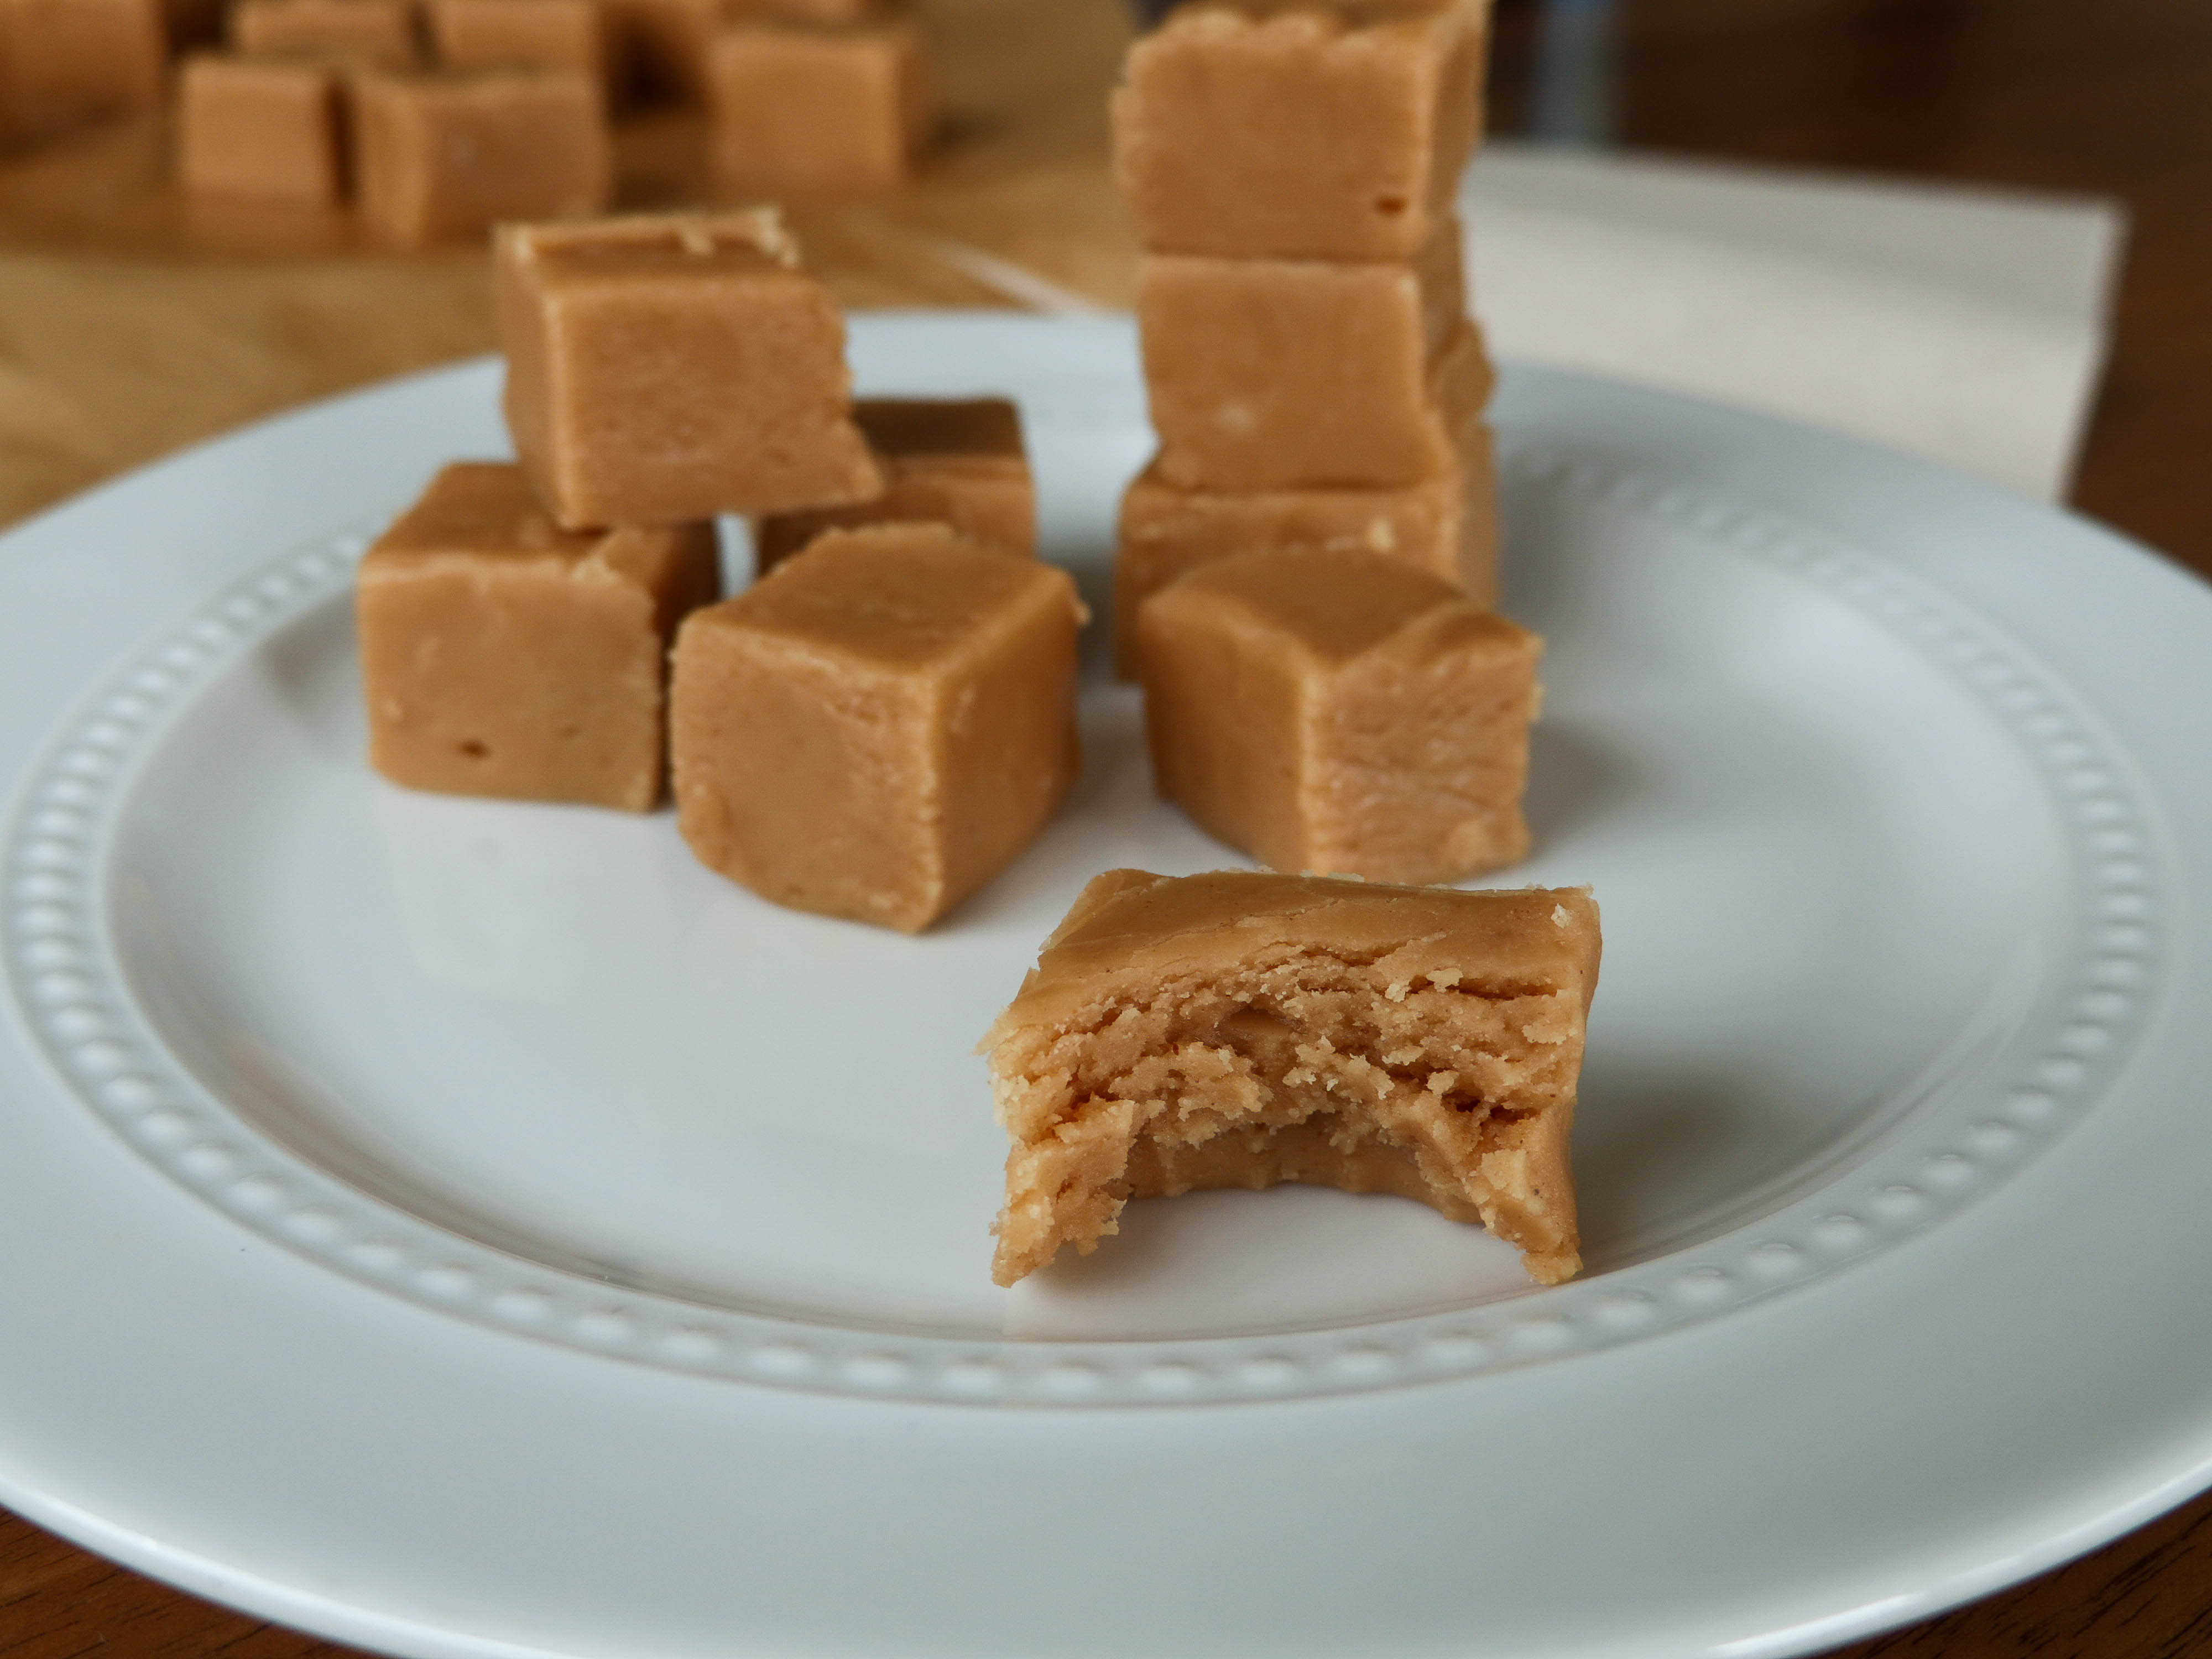 Creamy Cannabis Peanut Butter Squares